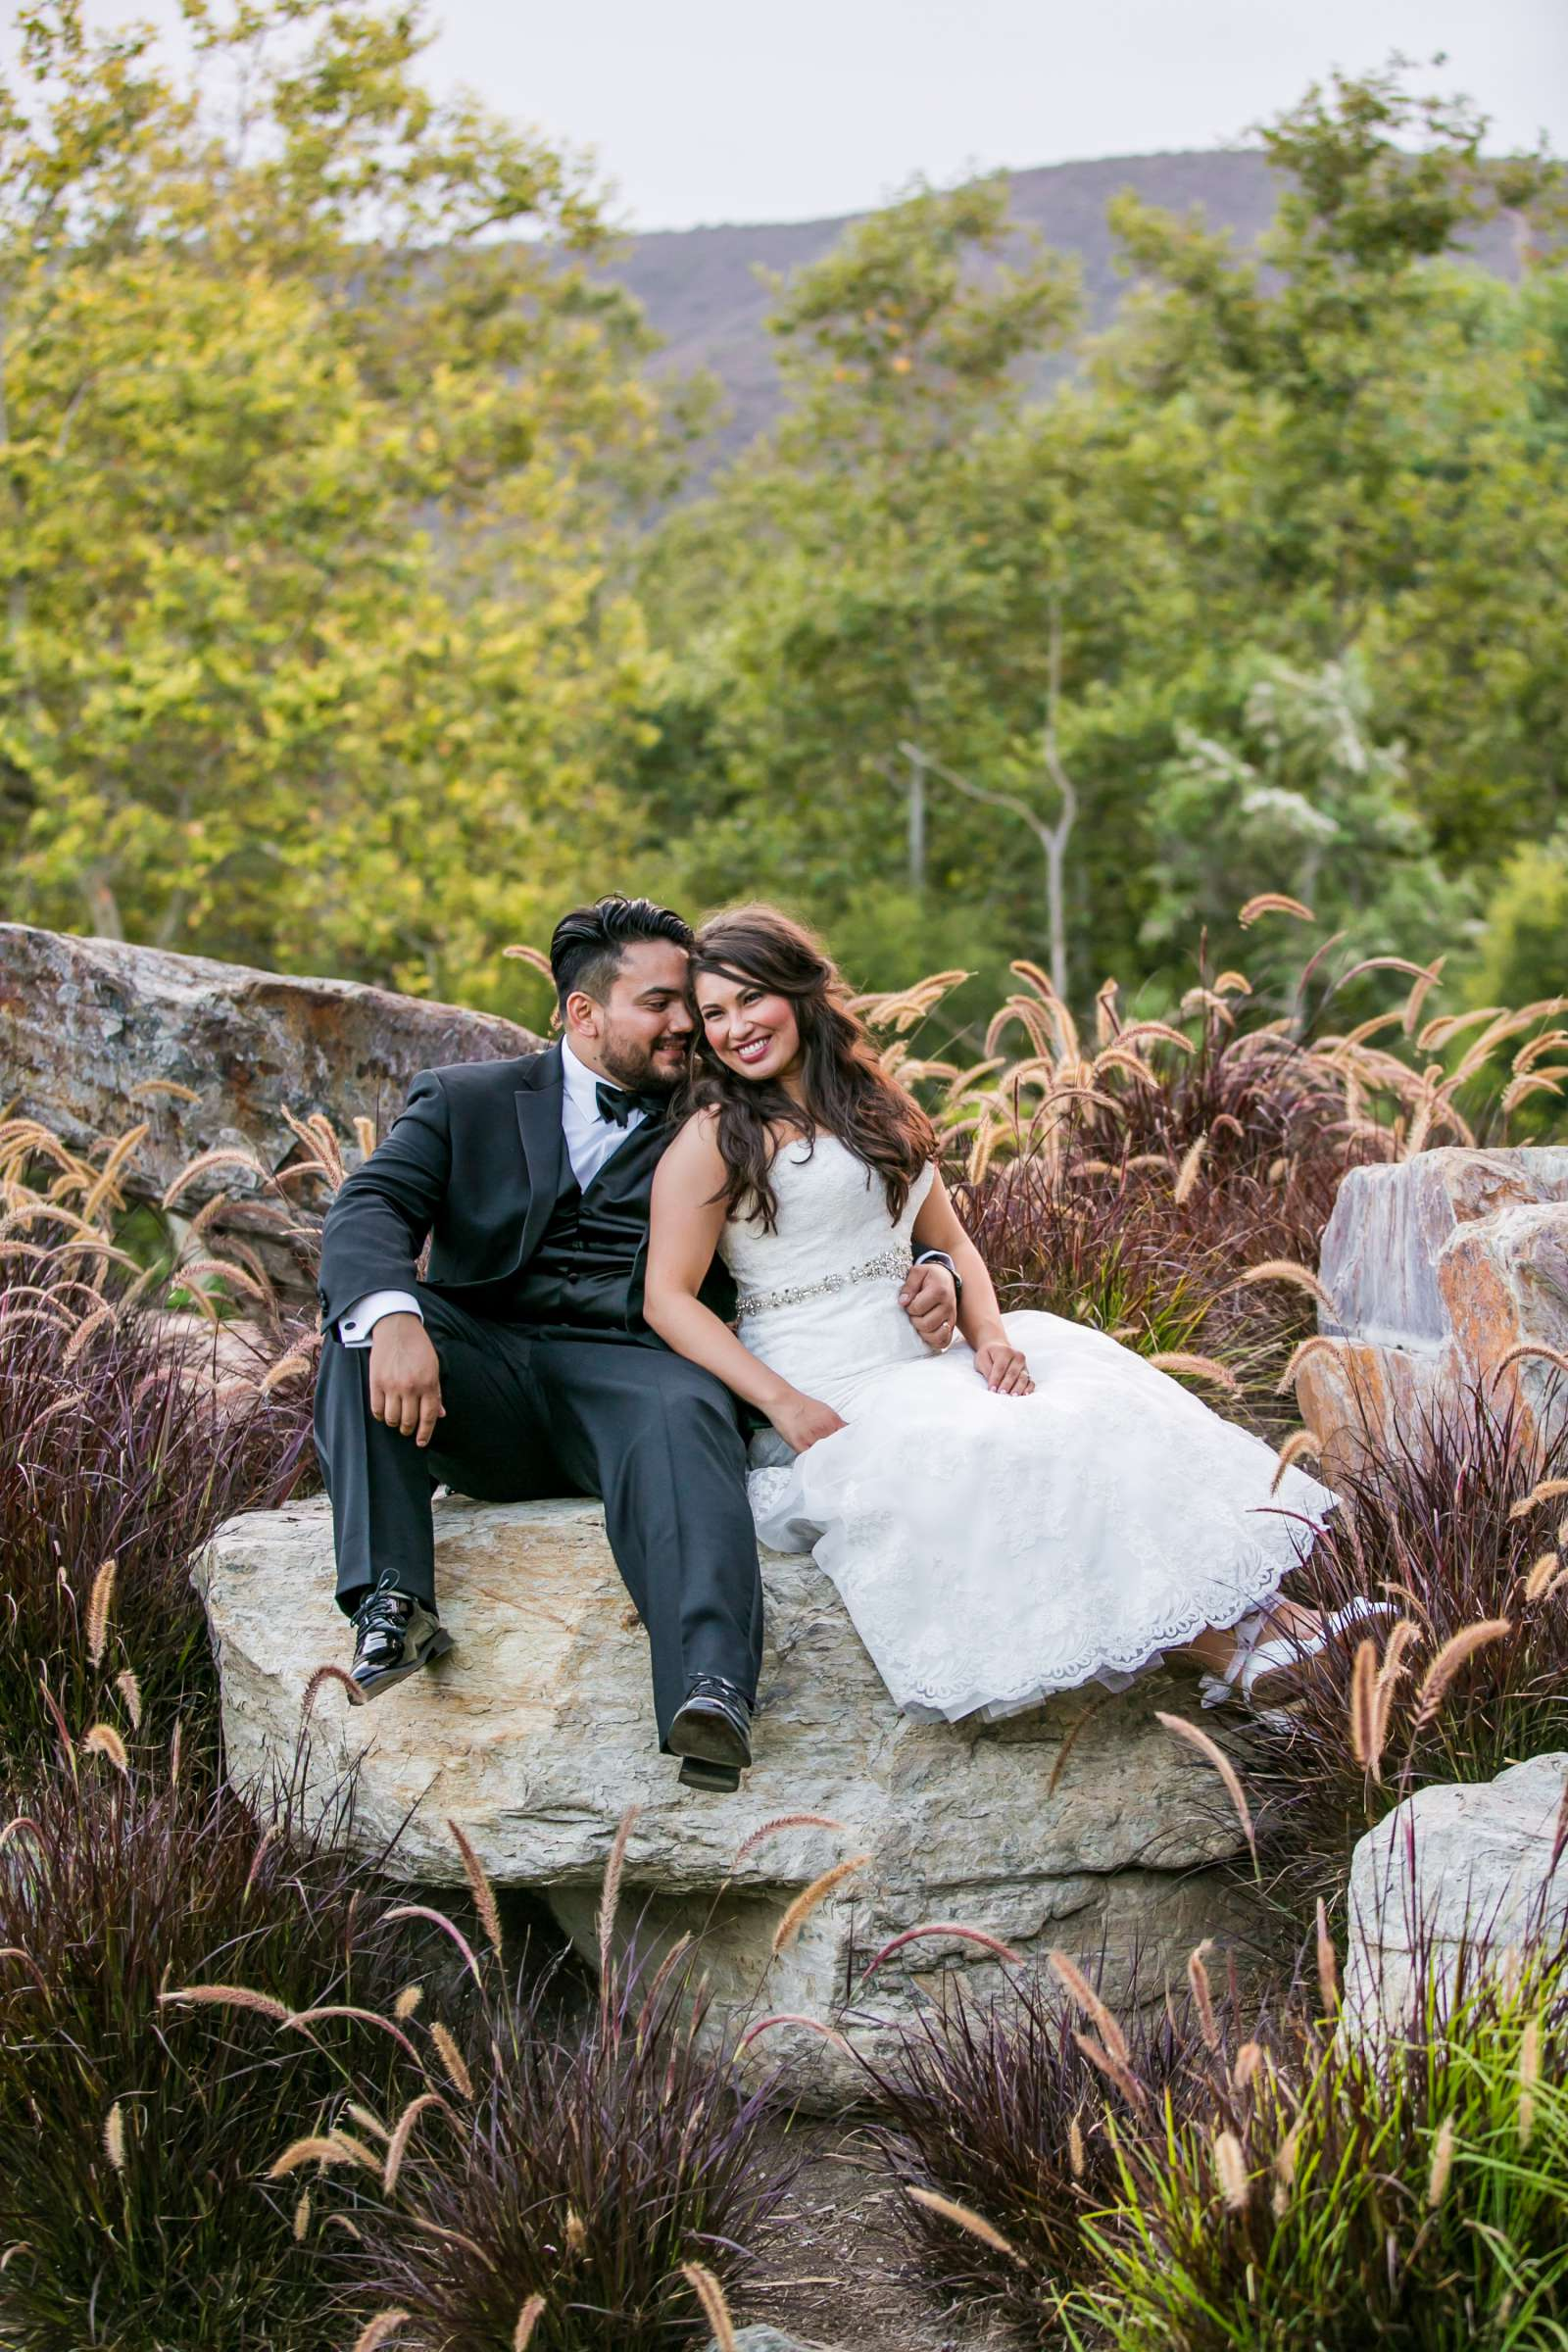 Twin Oaks Golf Course Wedding, Claudia and Dennis Wedding Photo #19 by True Photography